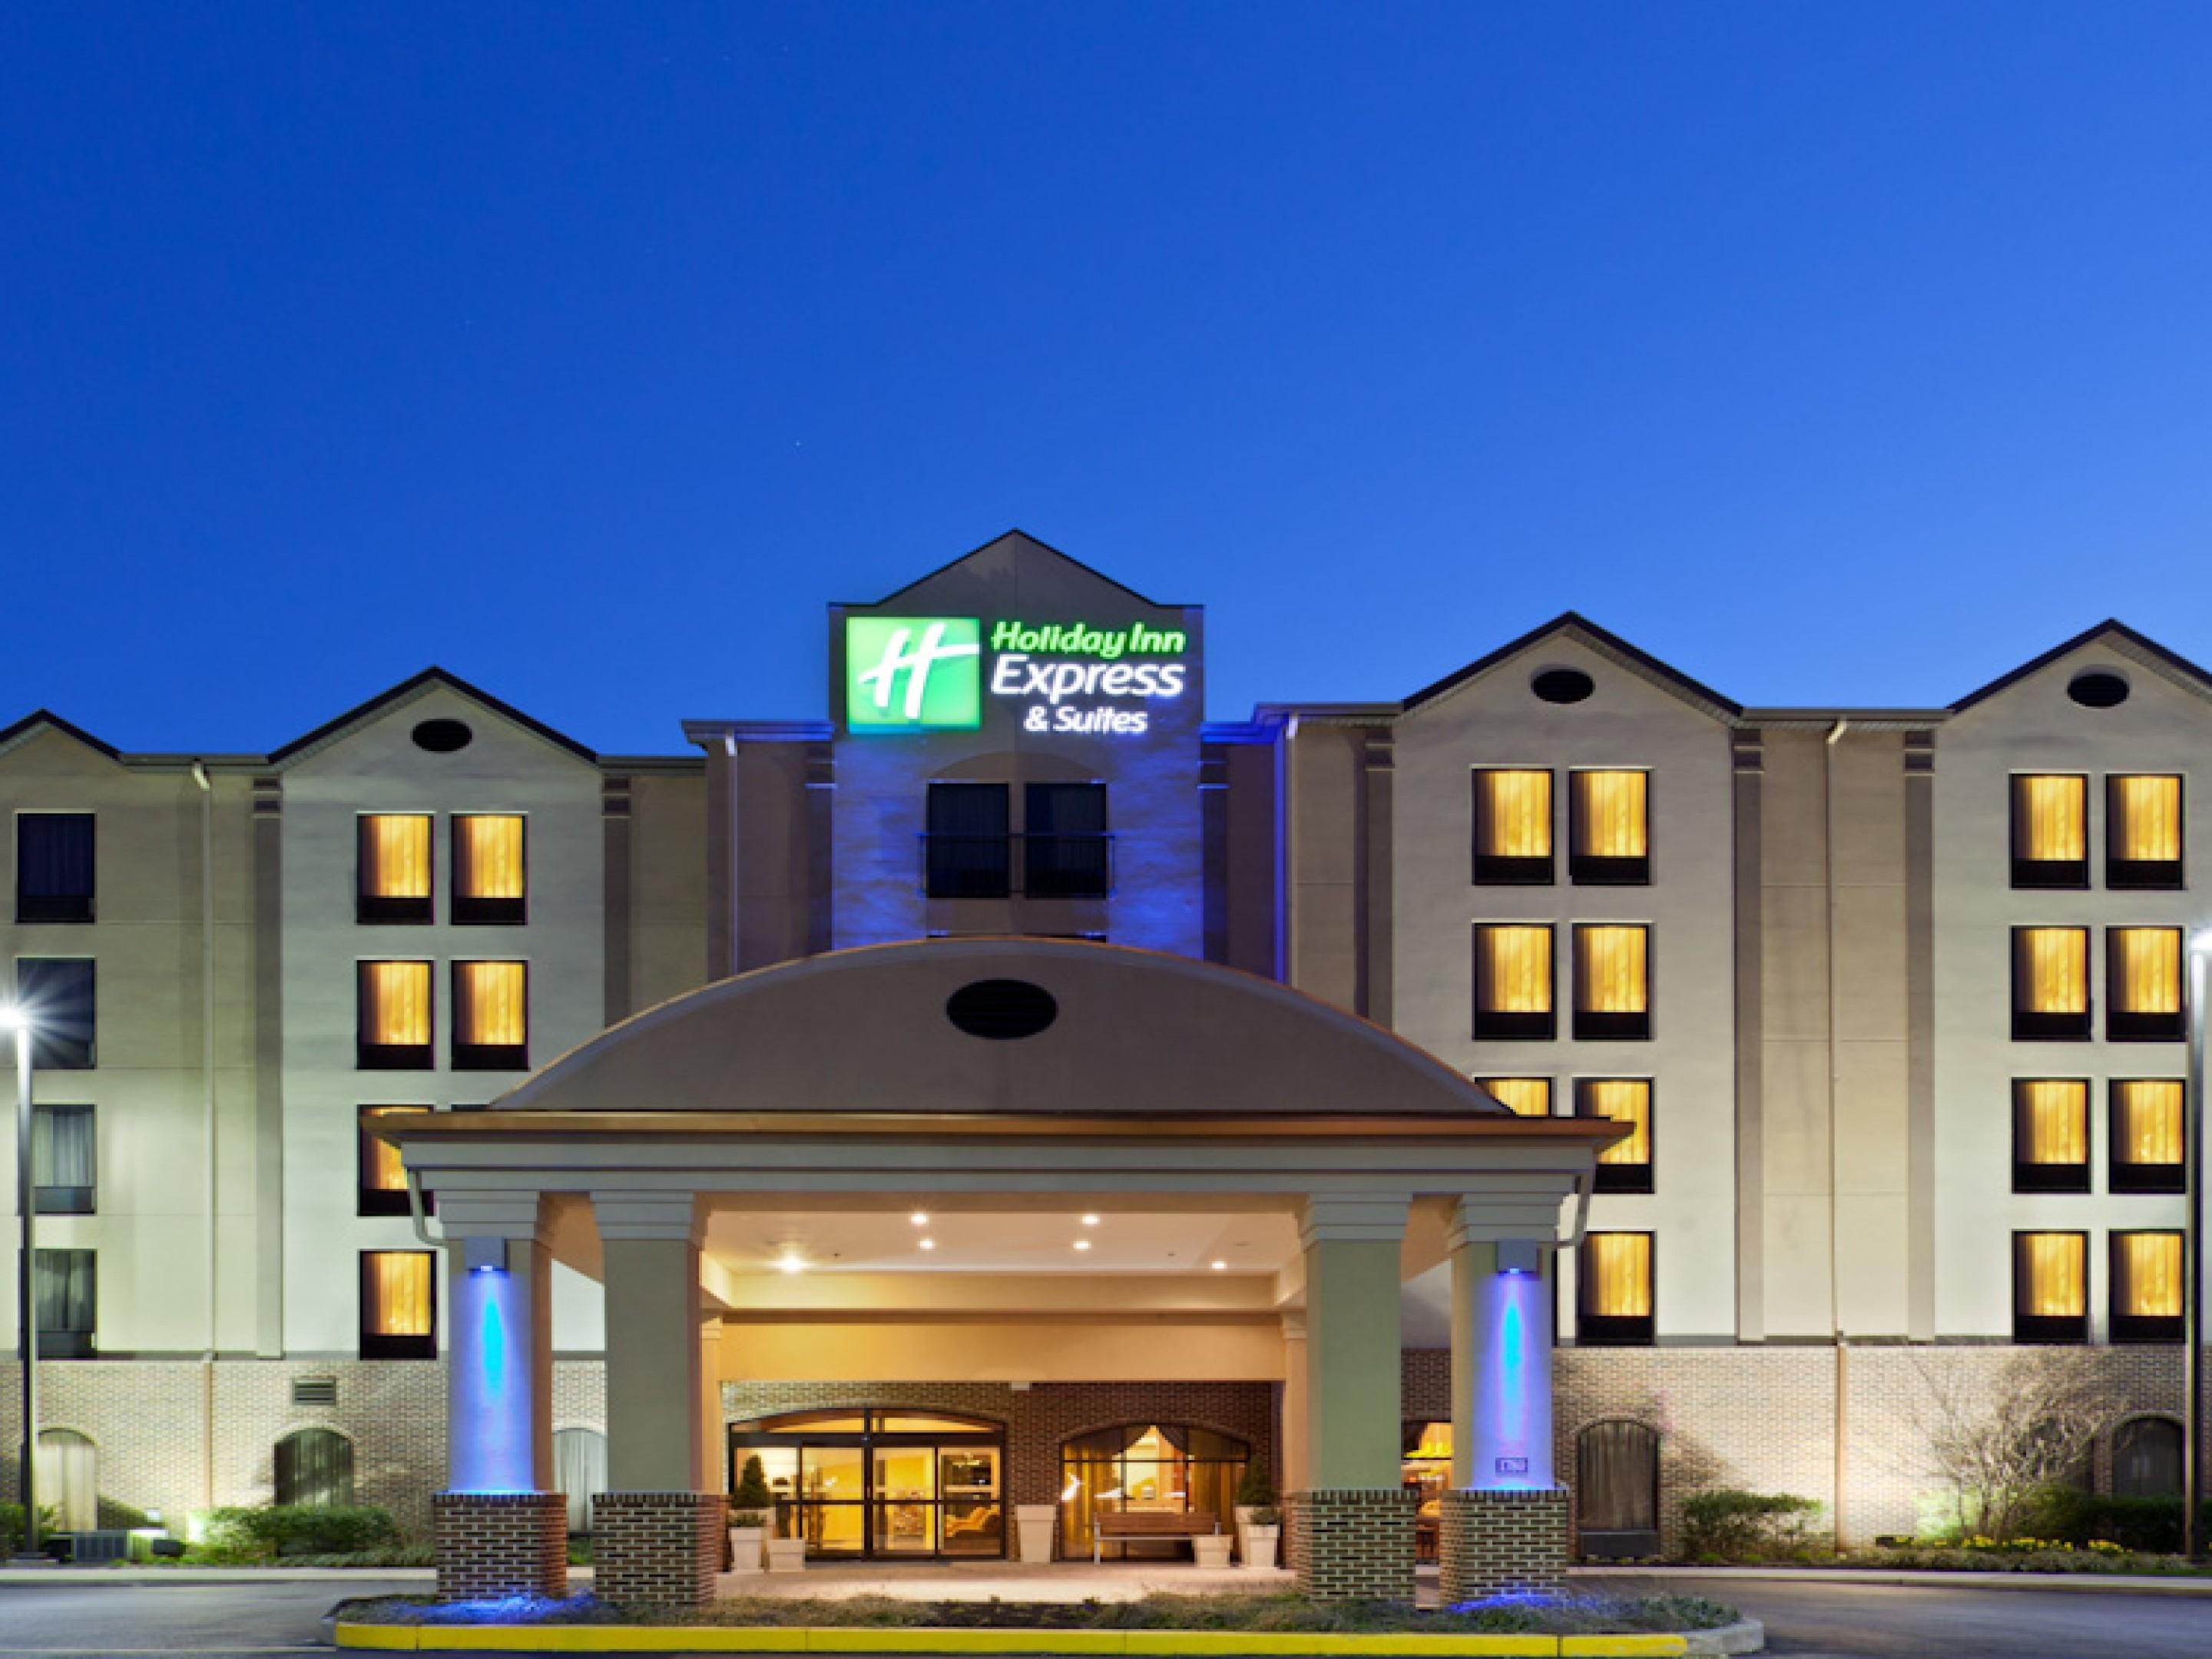 Holiday Inn Express Suites Dover Hotel By Ihg